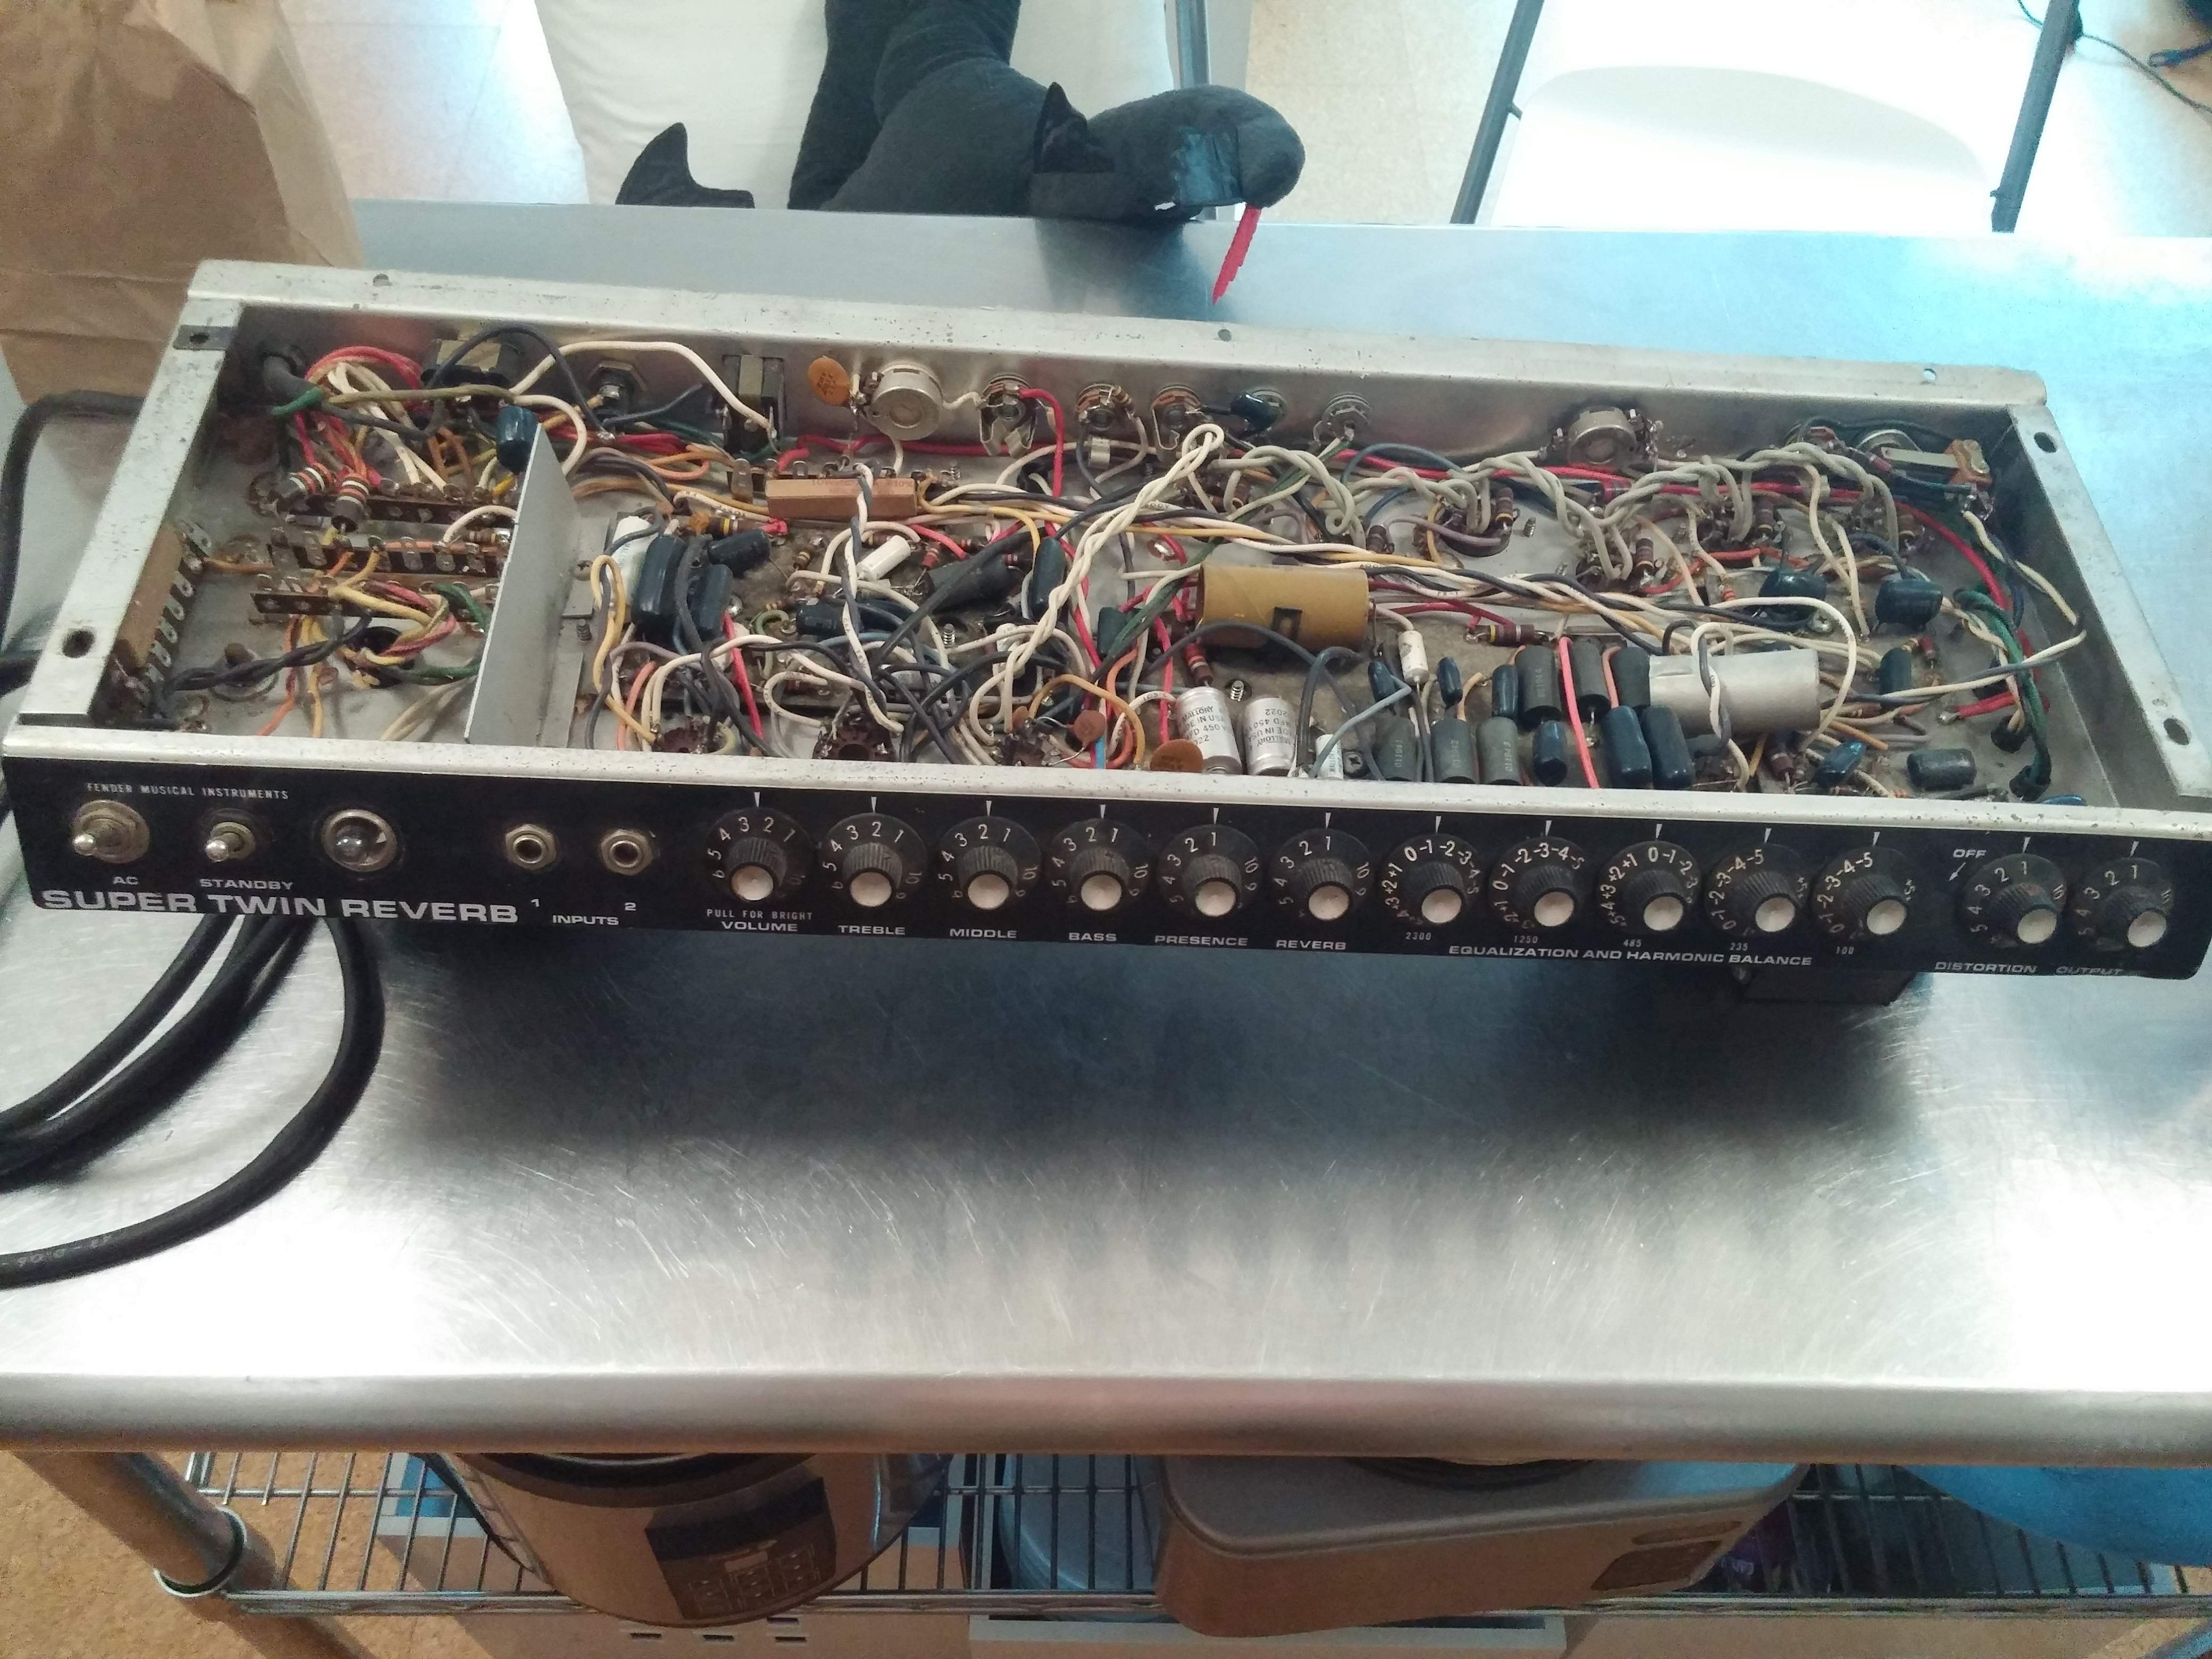 For Sale - Fender Super Twin Reverb - Fully-Loaded Amp Chassis ...